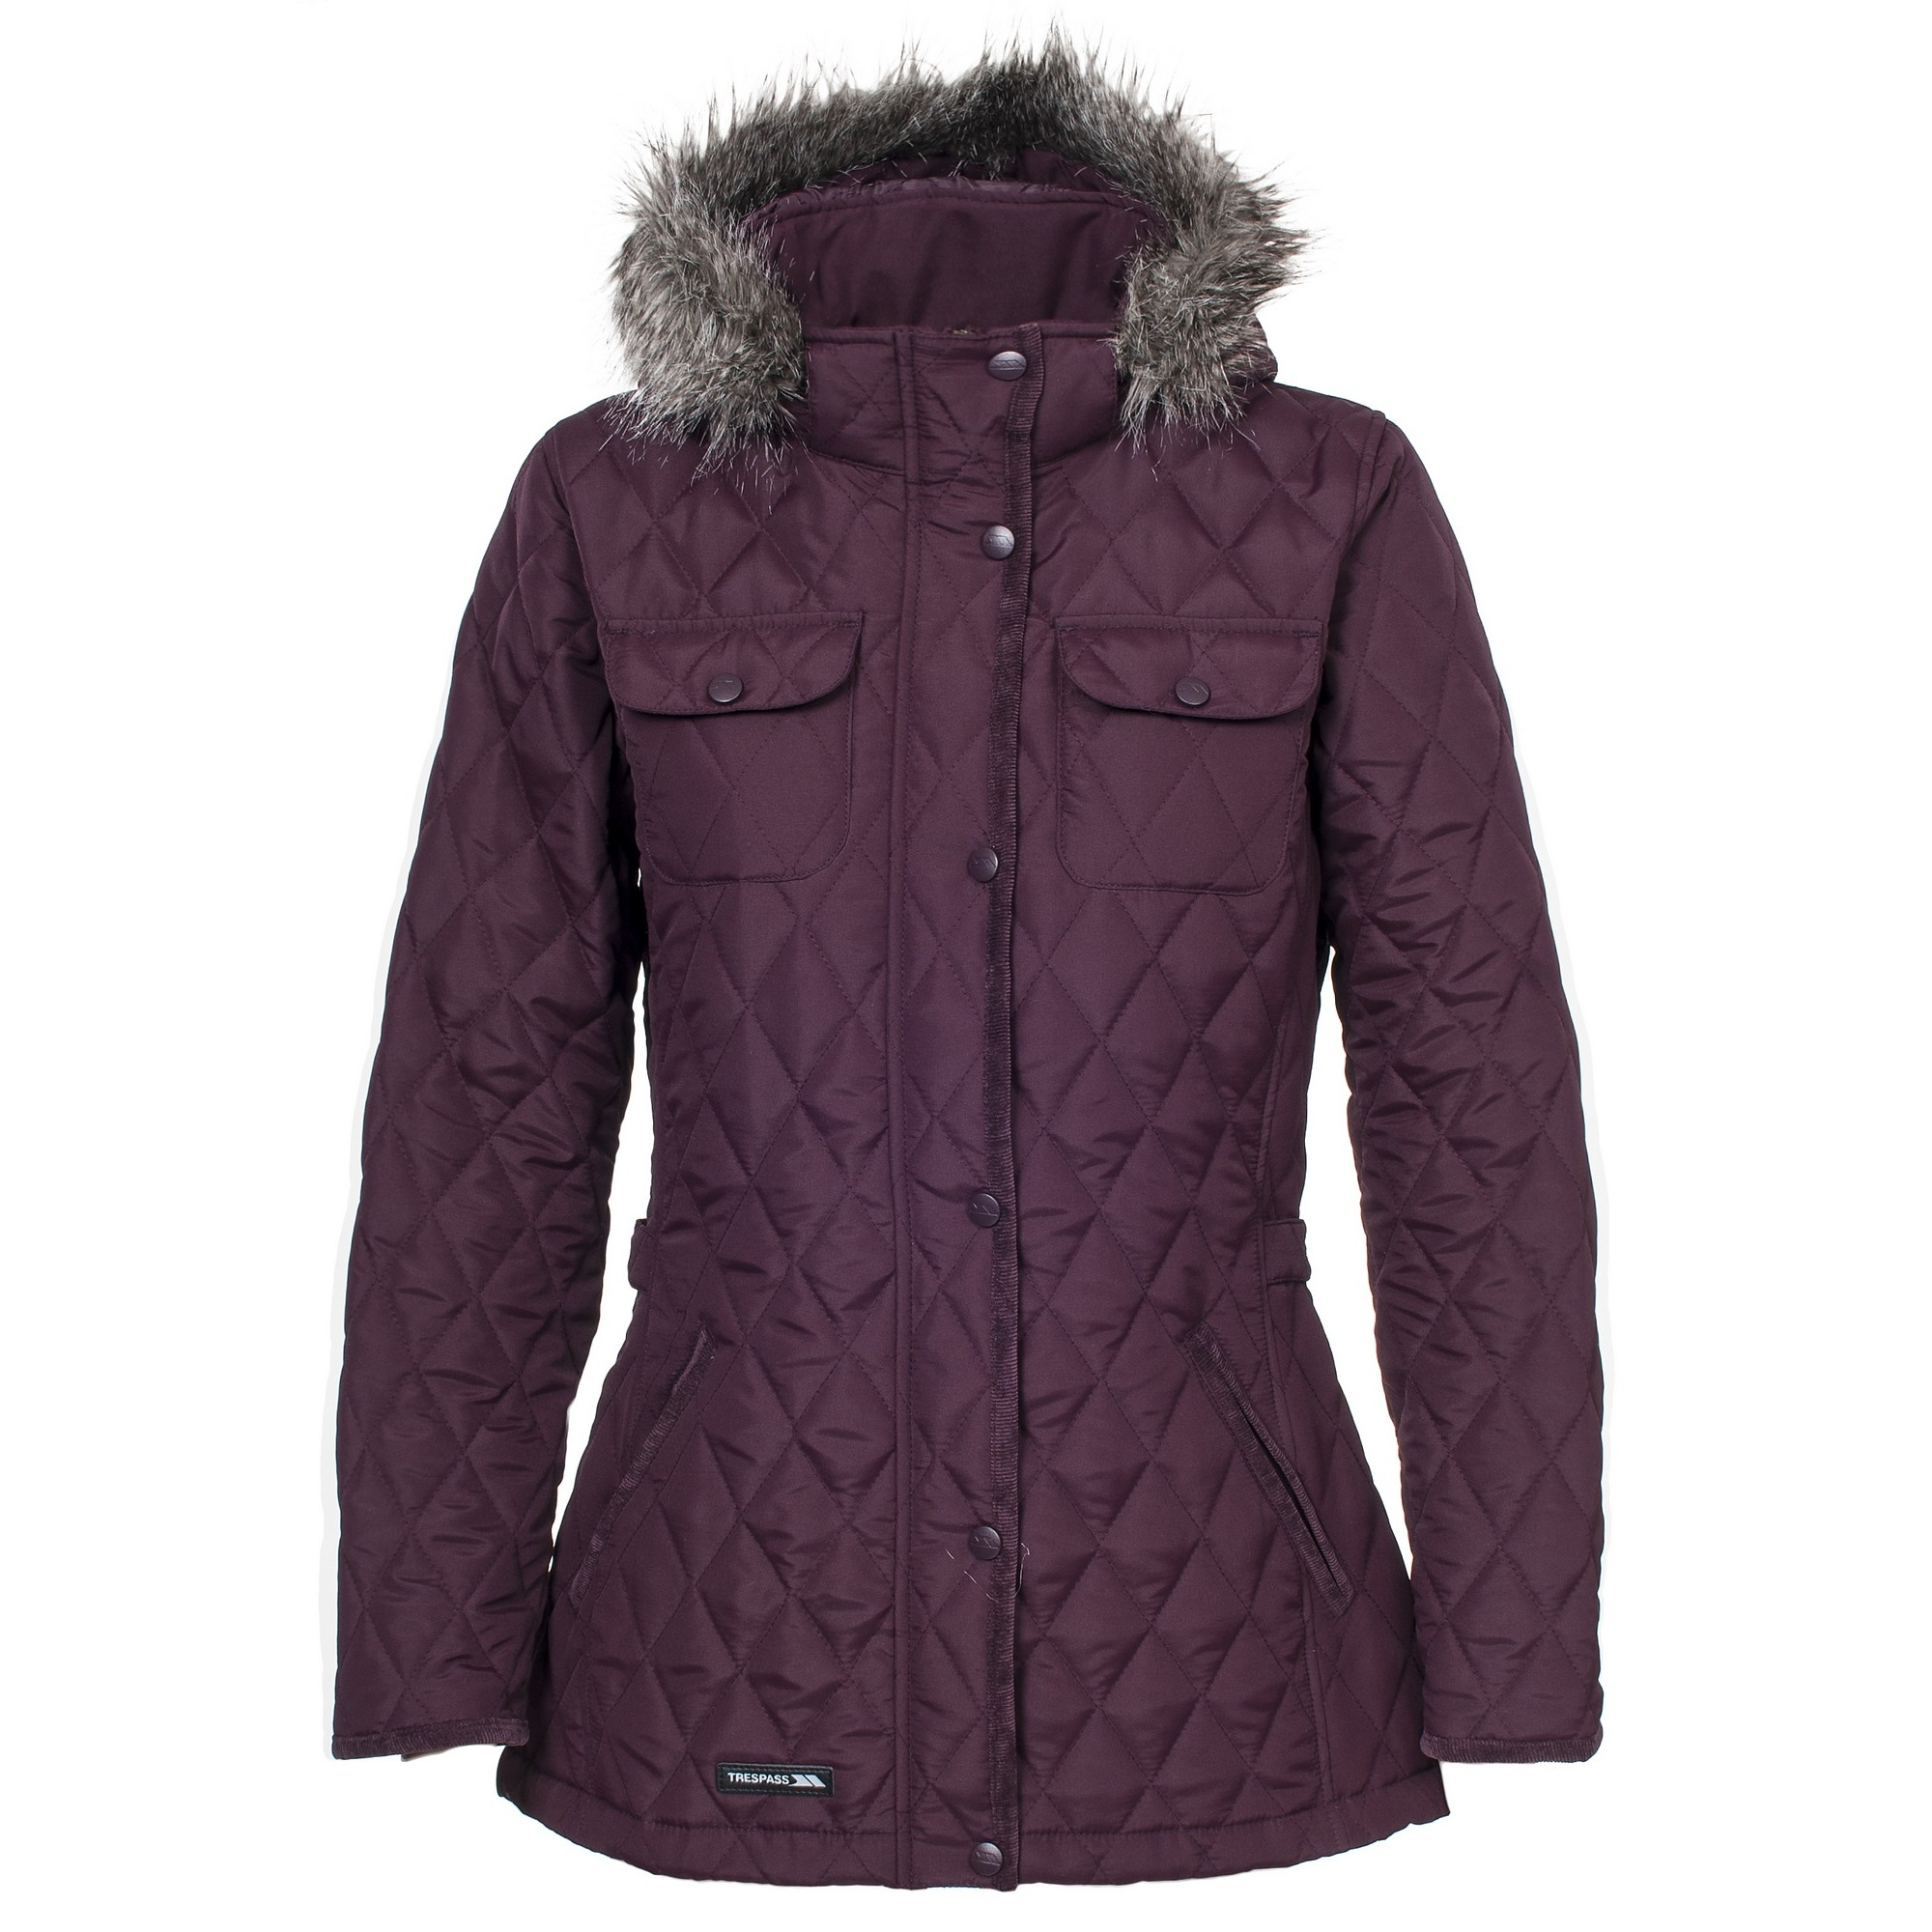 Padded Coats. Showing 48 of results that match your query. Search Product Result. Product - Women Padded Blazer Jacket Long Sleeve Cardigan Zip Up Tops Outwear Biker Coat Motorcycle Overcoat Plus Size. Product Image. Price $ Product Title.